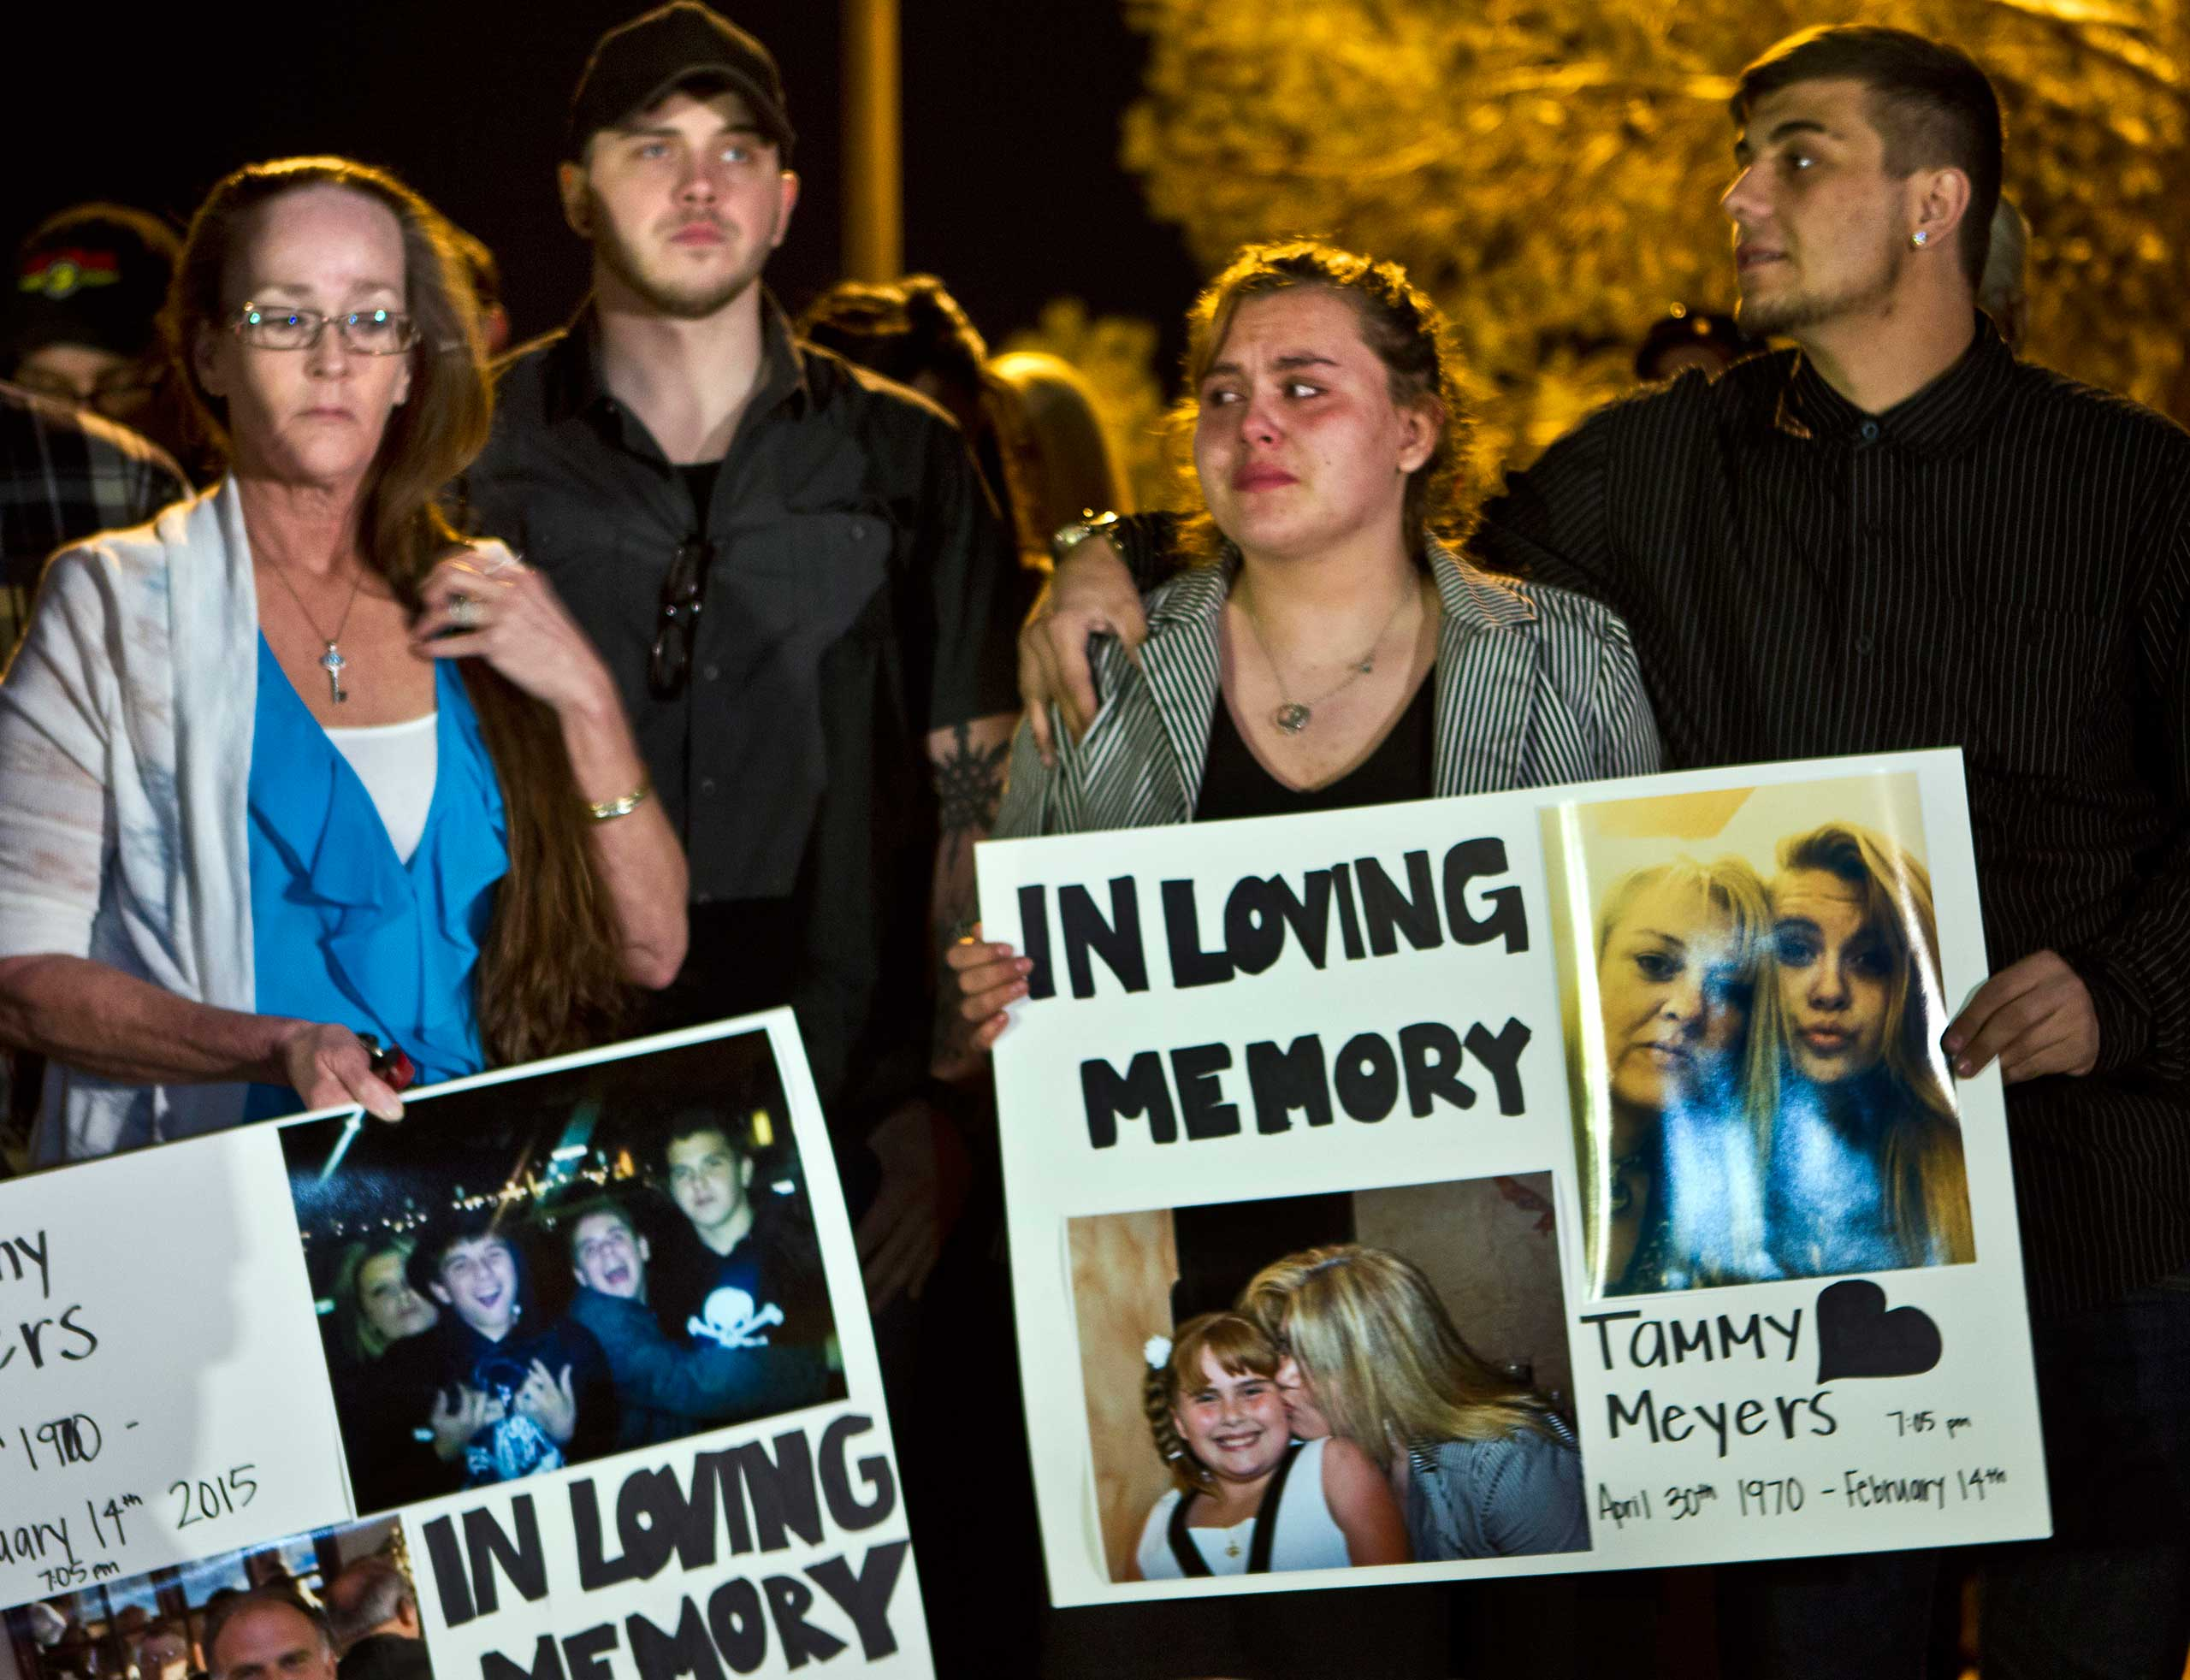 People participate in a candlelight vigil for Tammy Meyers, who was taken off life support on Saturday after a shooting in Las Vegas, Feb. 17, 2015.